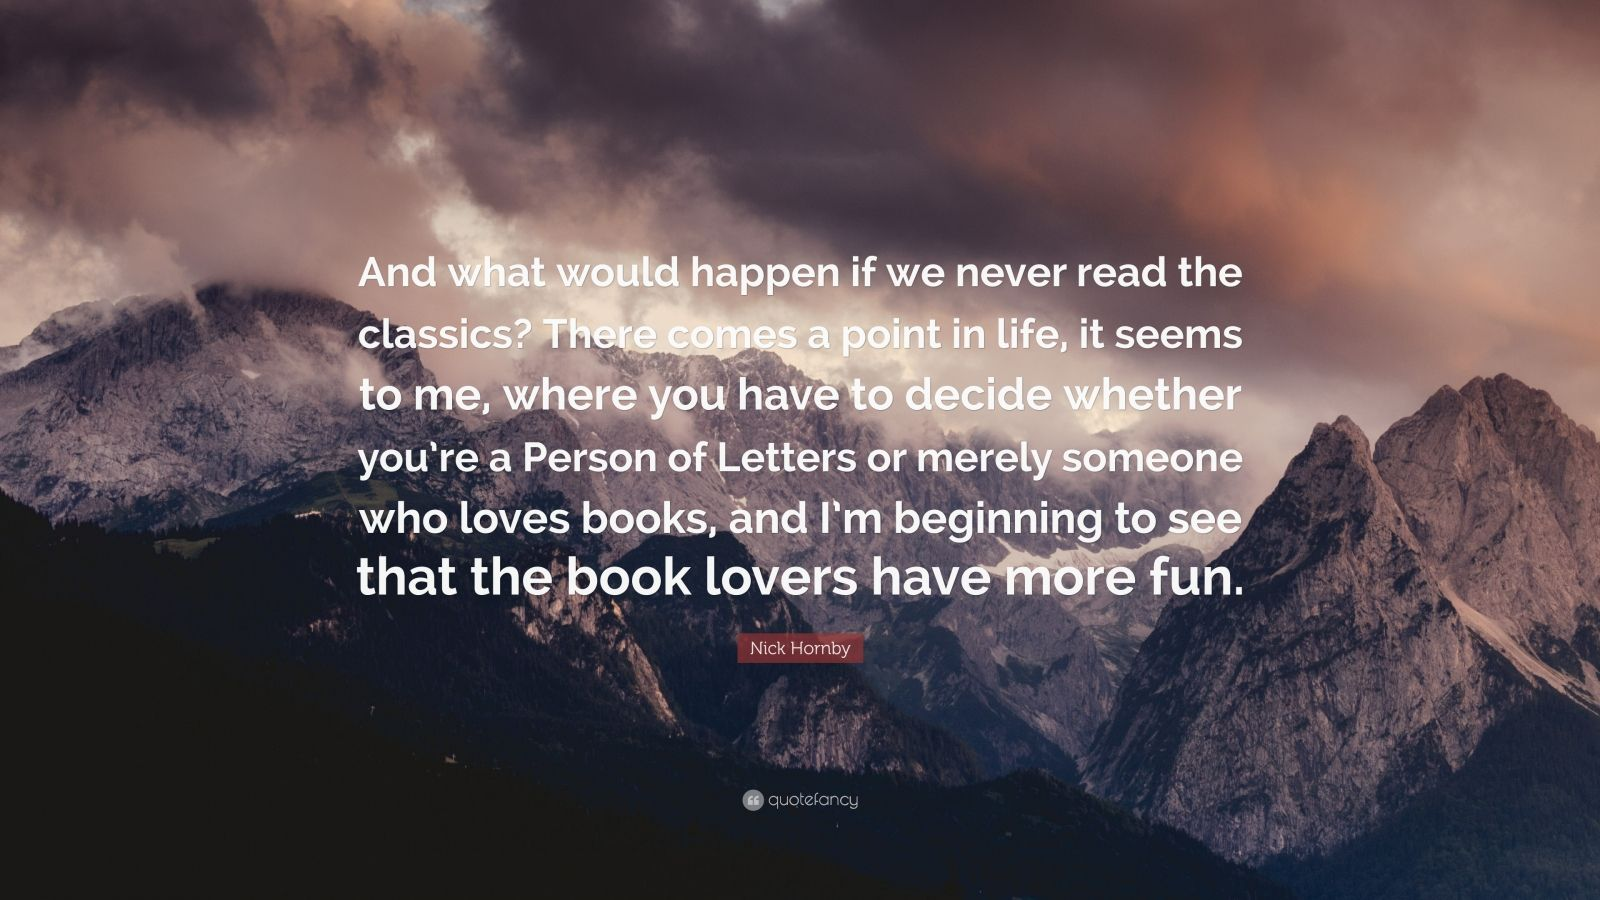 """Nick Hornby Quote: """"And what would happen if we never read the classics? There comes a point in life, it seems to me, where you have to decide whether you're a Person of Letters or merely someone who loves books, and I'm beginning to see that the book lovers have more fun."""""""